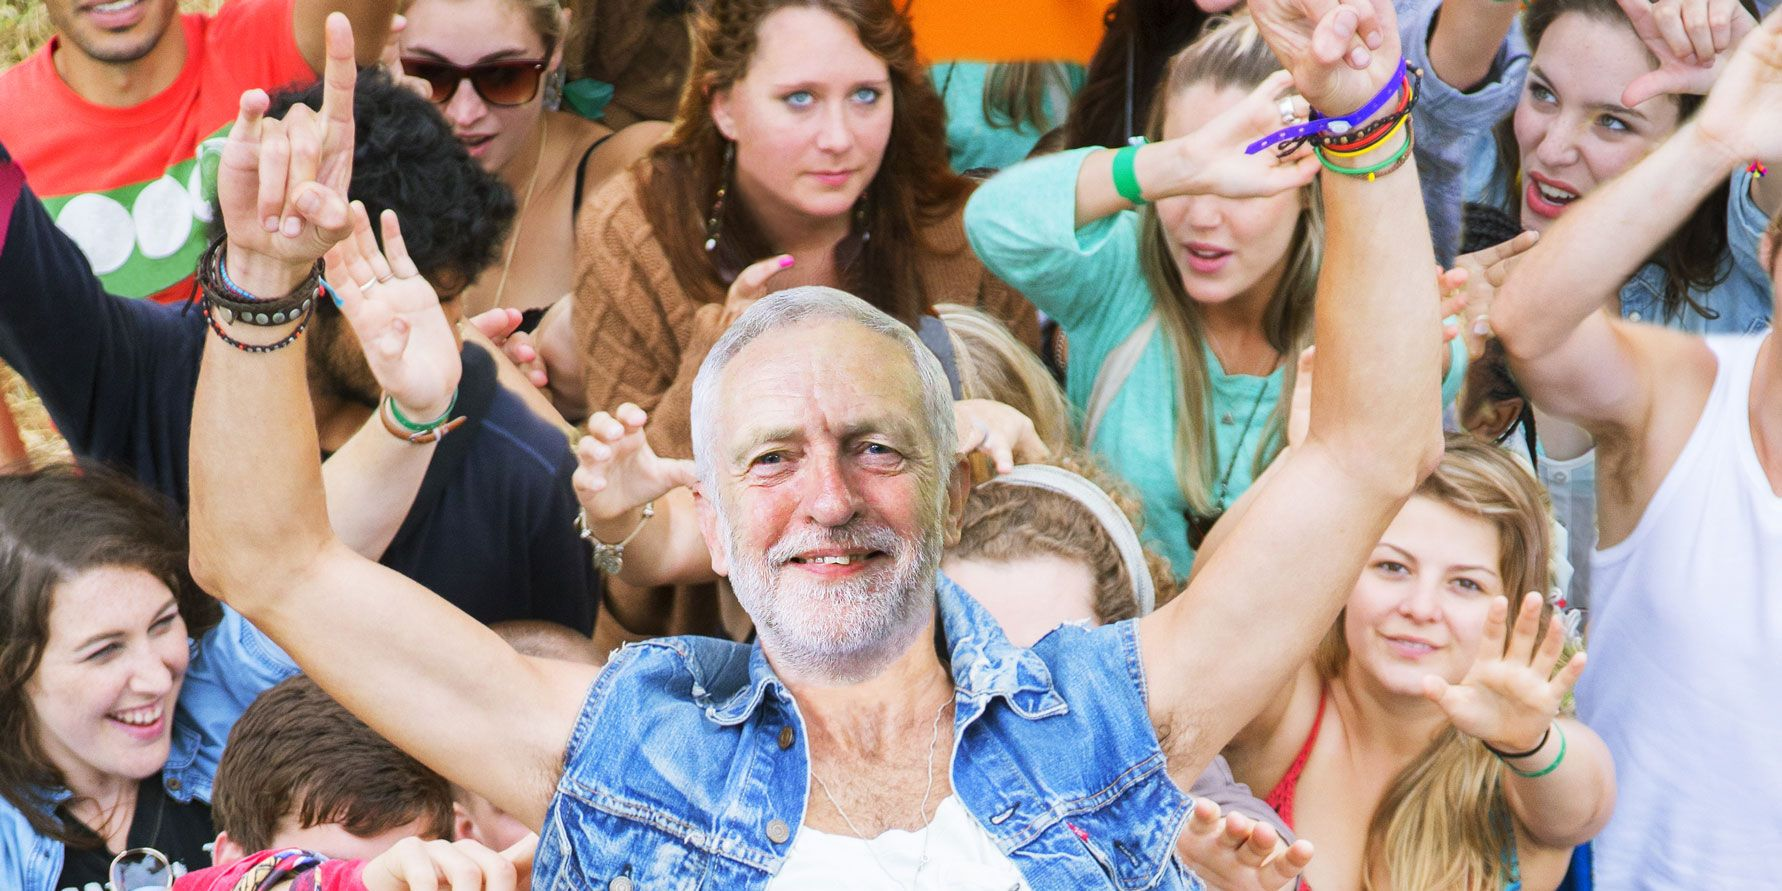 Jeremy Corbyn will lead his biggest rally yet as he takes to the Pyramid Stage for Glastonbury 2017